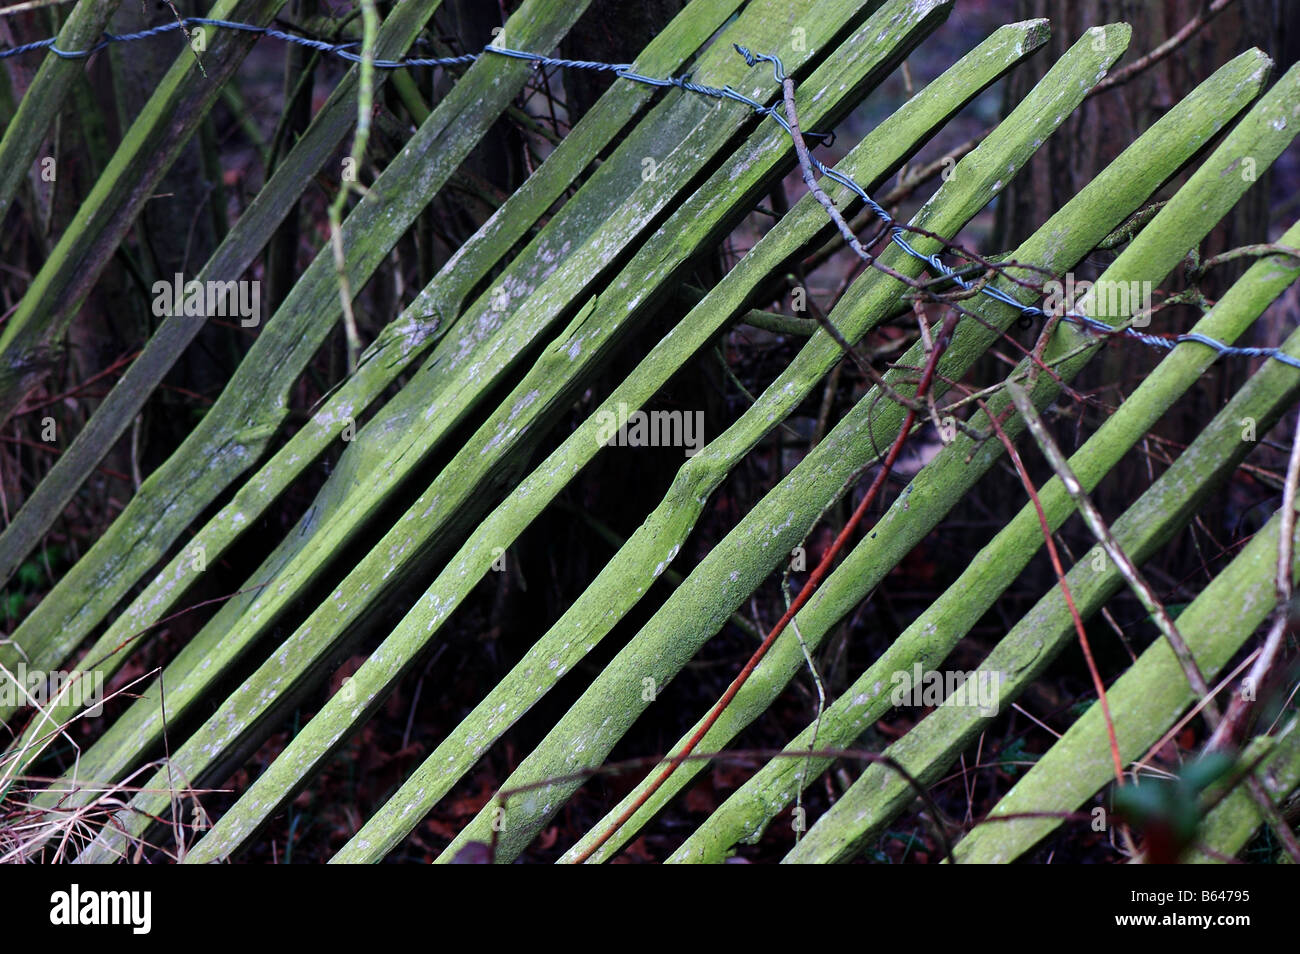 A wooden fence gone green and falling over - Stock Image